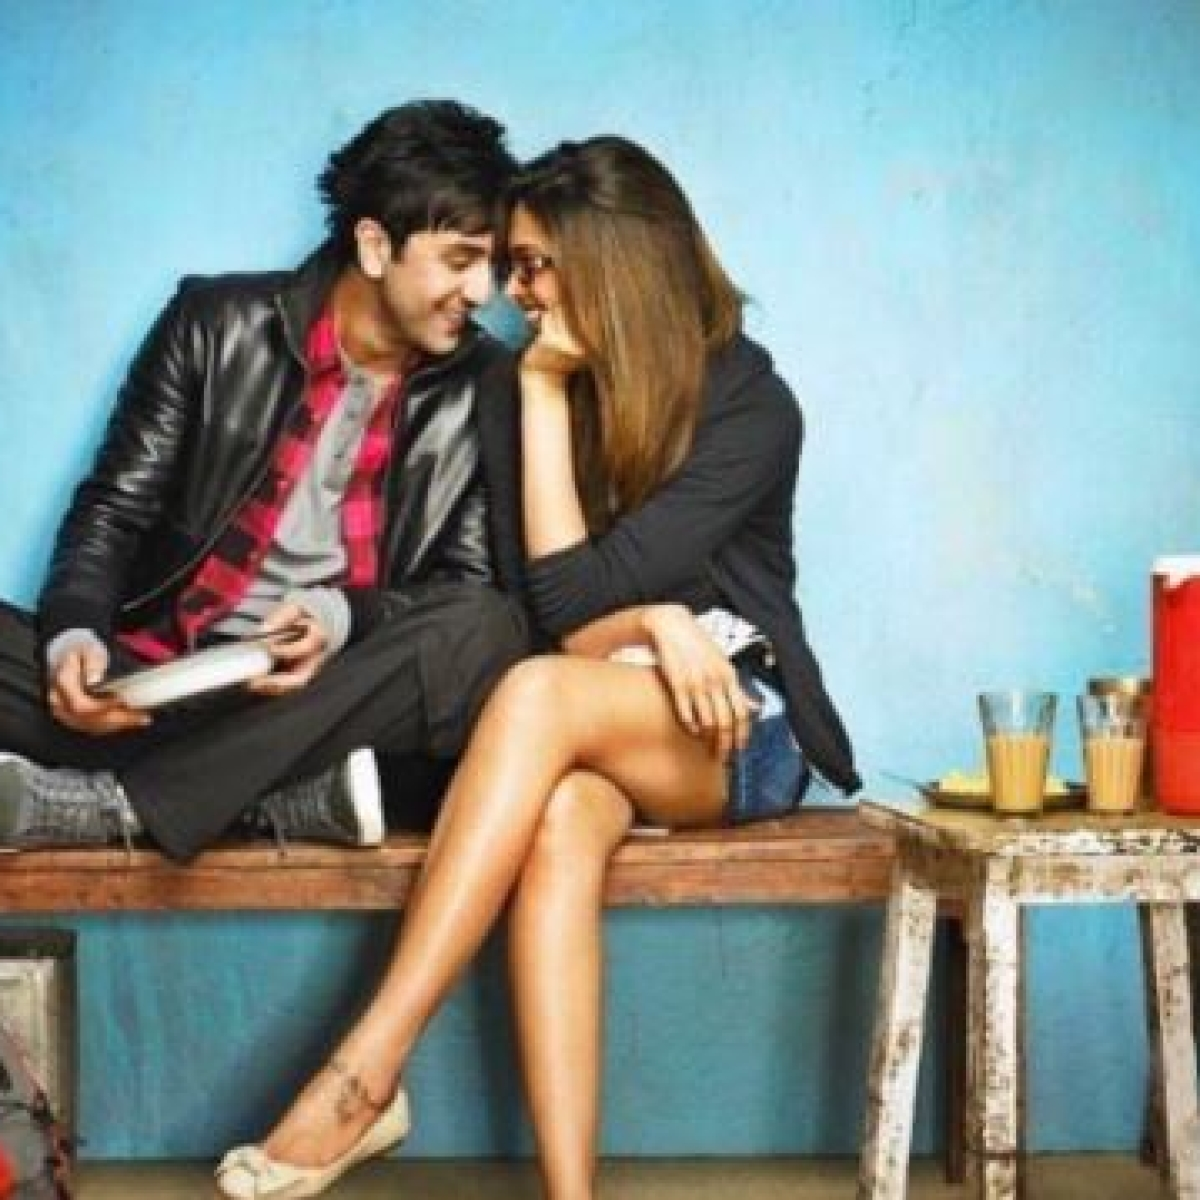 'Yeh Jawaani Hai Deewani' clocks 7 years, Deepika shares pics with Ranbir from 'first look' test